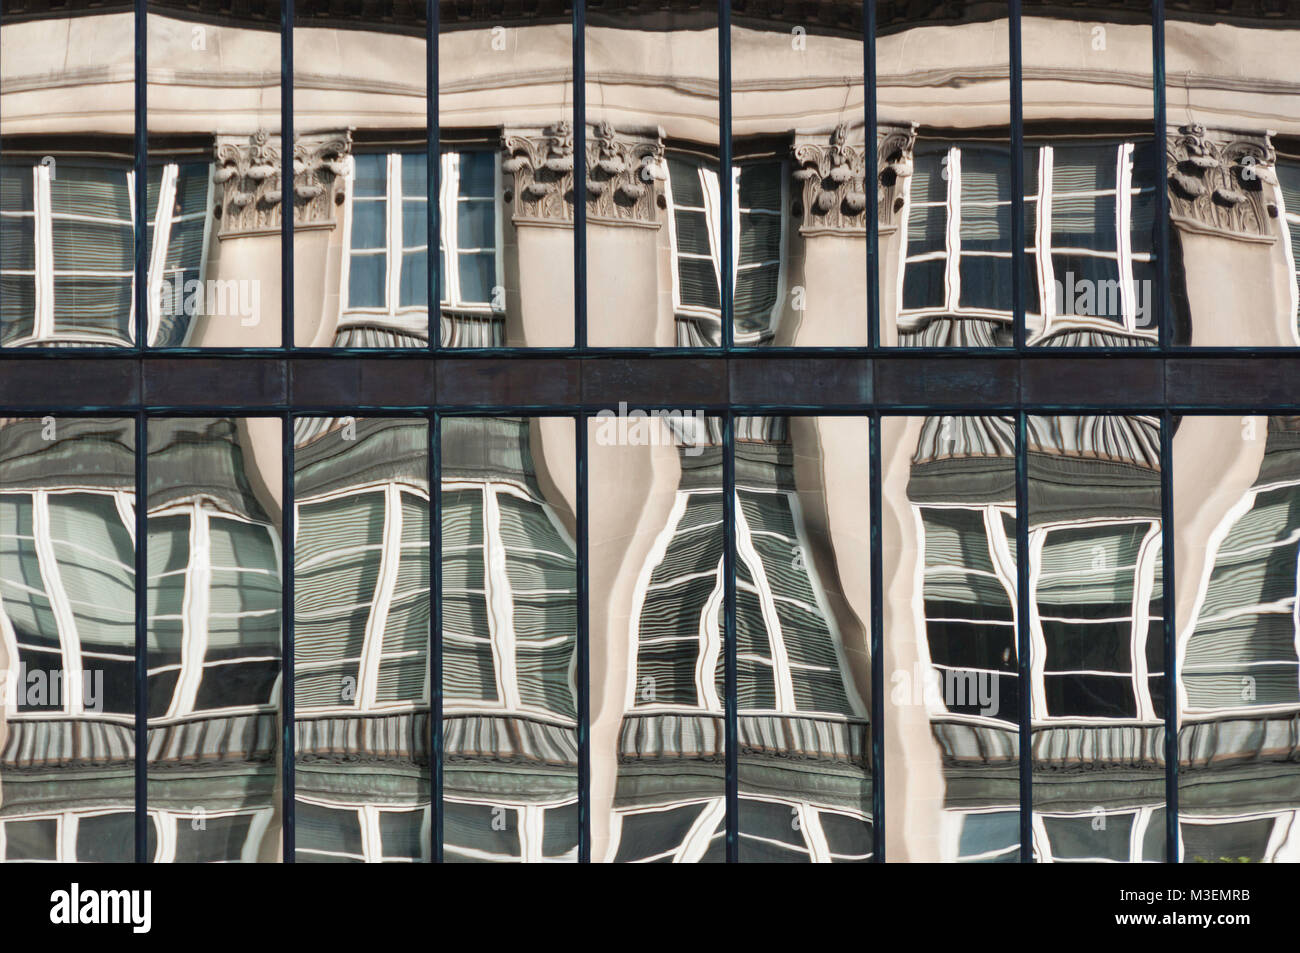 warped reflection of old building in windows of new glass front modern building - Stock Image